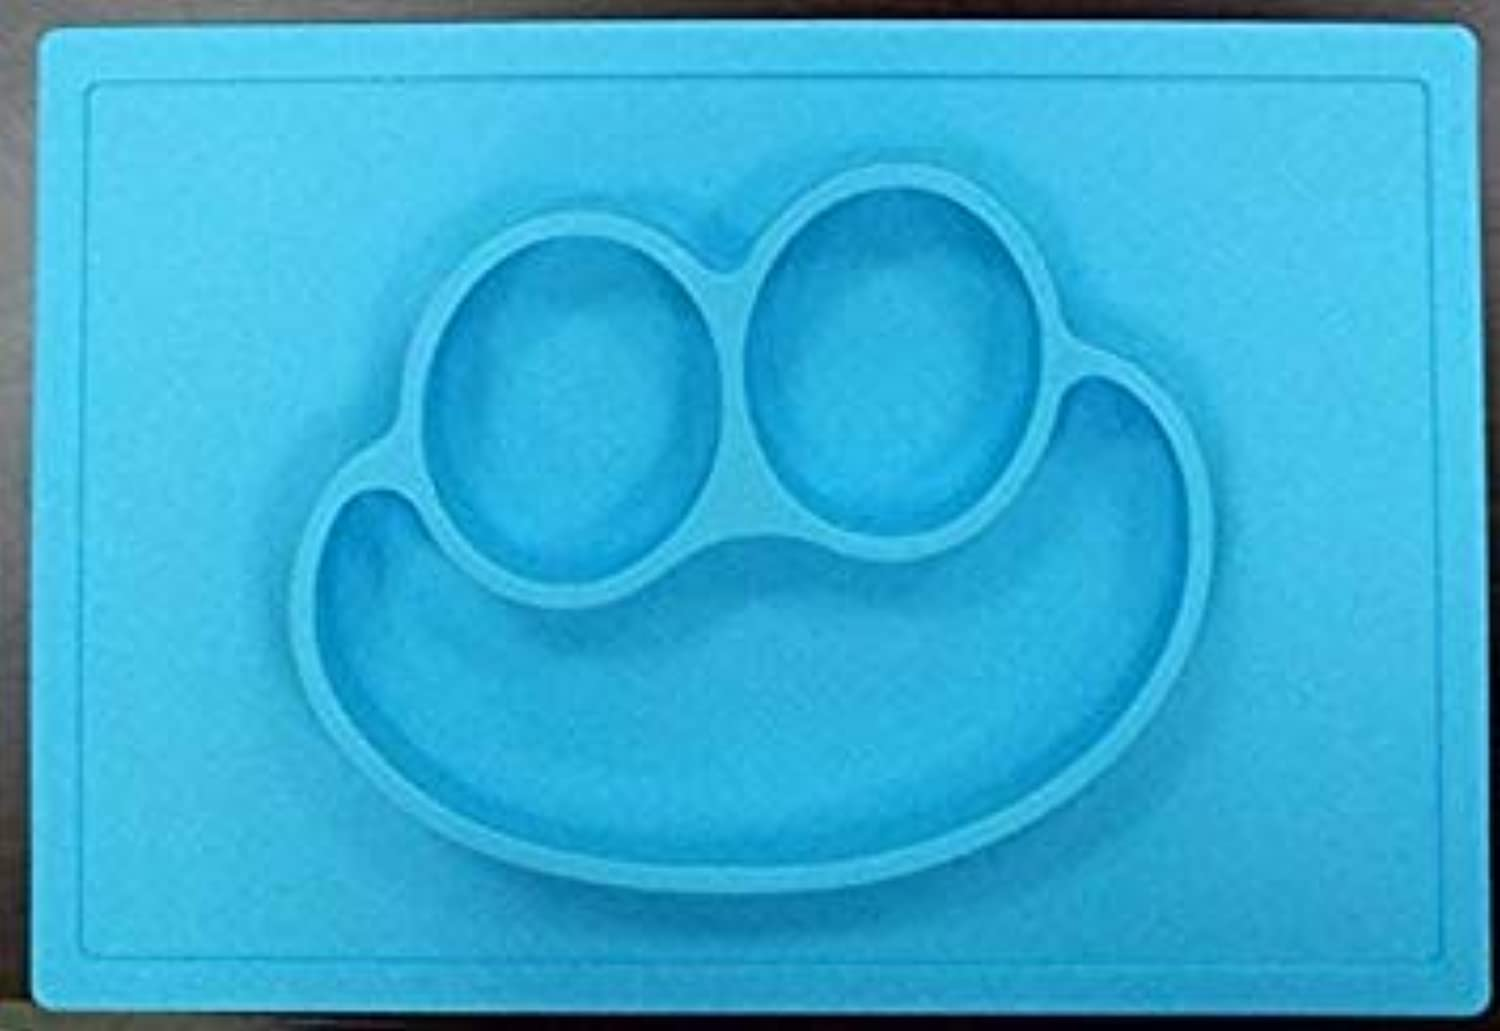 Happy Mat - One-Piece Silicone Placemat + Plate,All-in-one Placemat for Kids suctions to Surface, Non-Slip mat BPA Free bluee